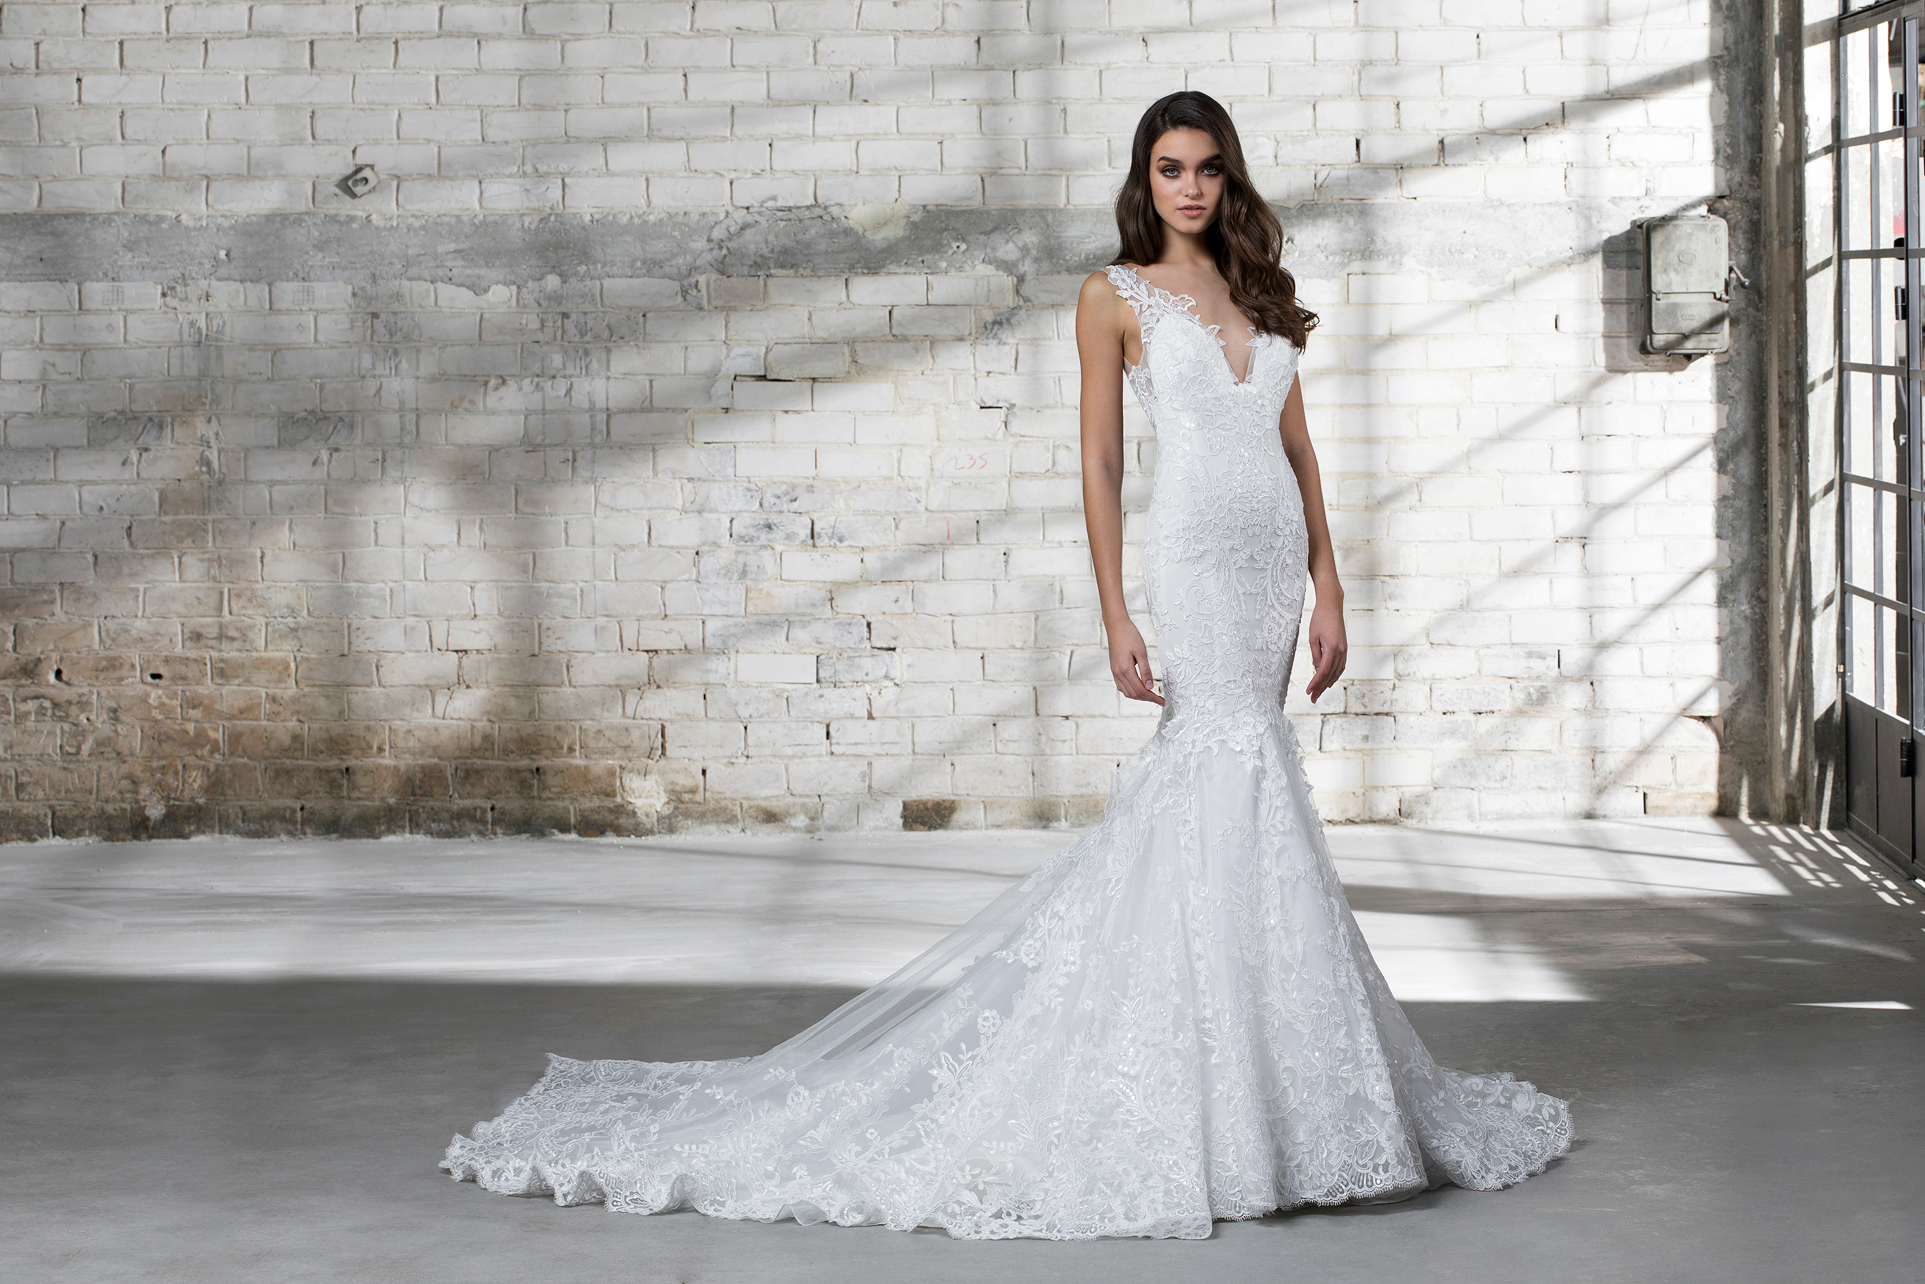 pnina tornai wedding dress spring 2019 lace sleeveless mermaid